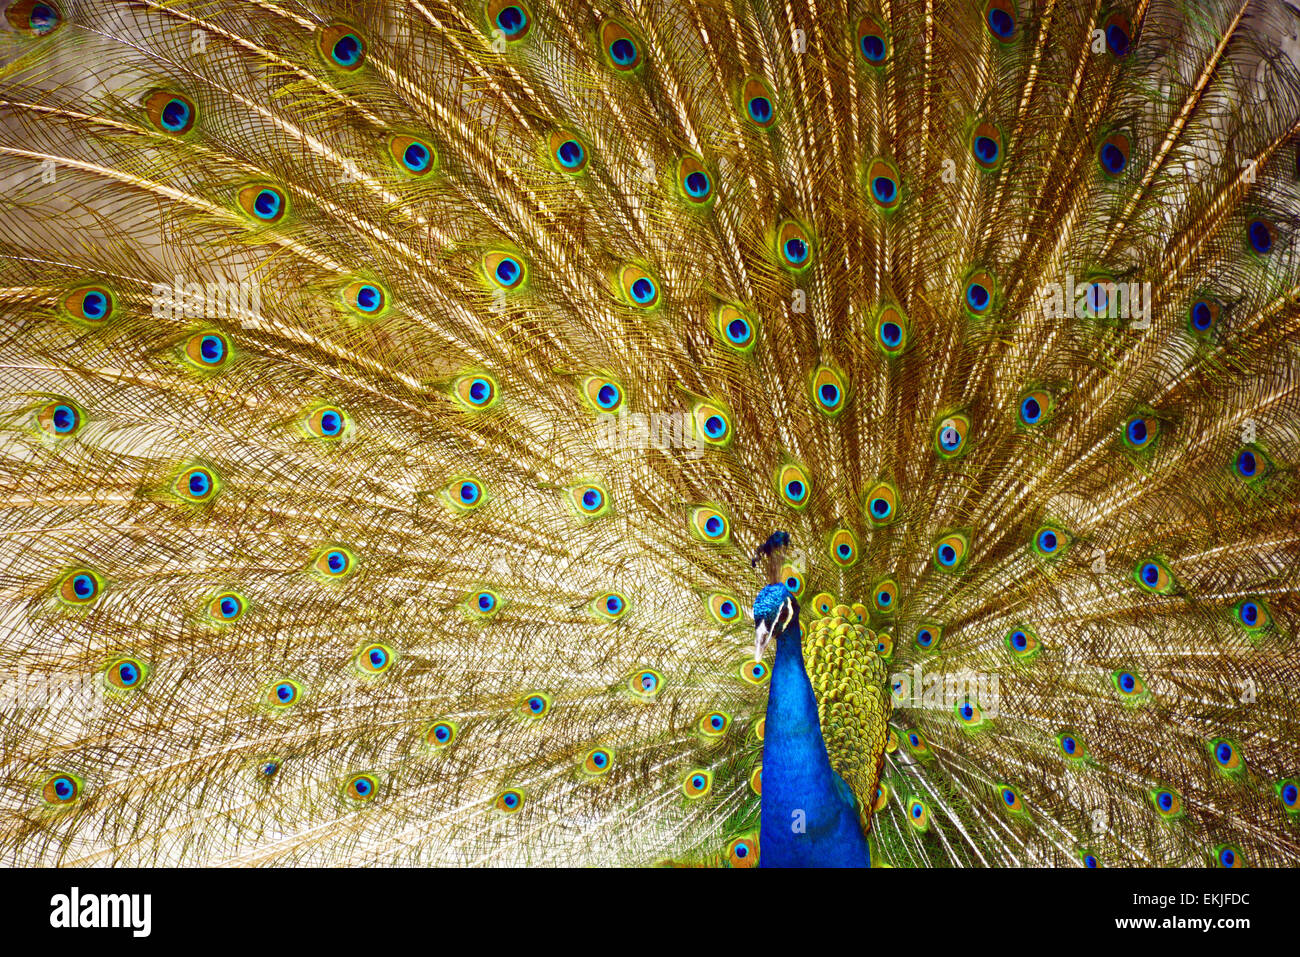 Chengdu, China  10th Apr, 2015  A peacock displaying its feathers in